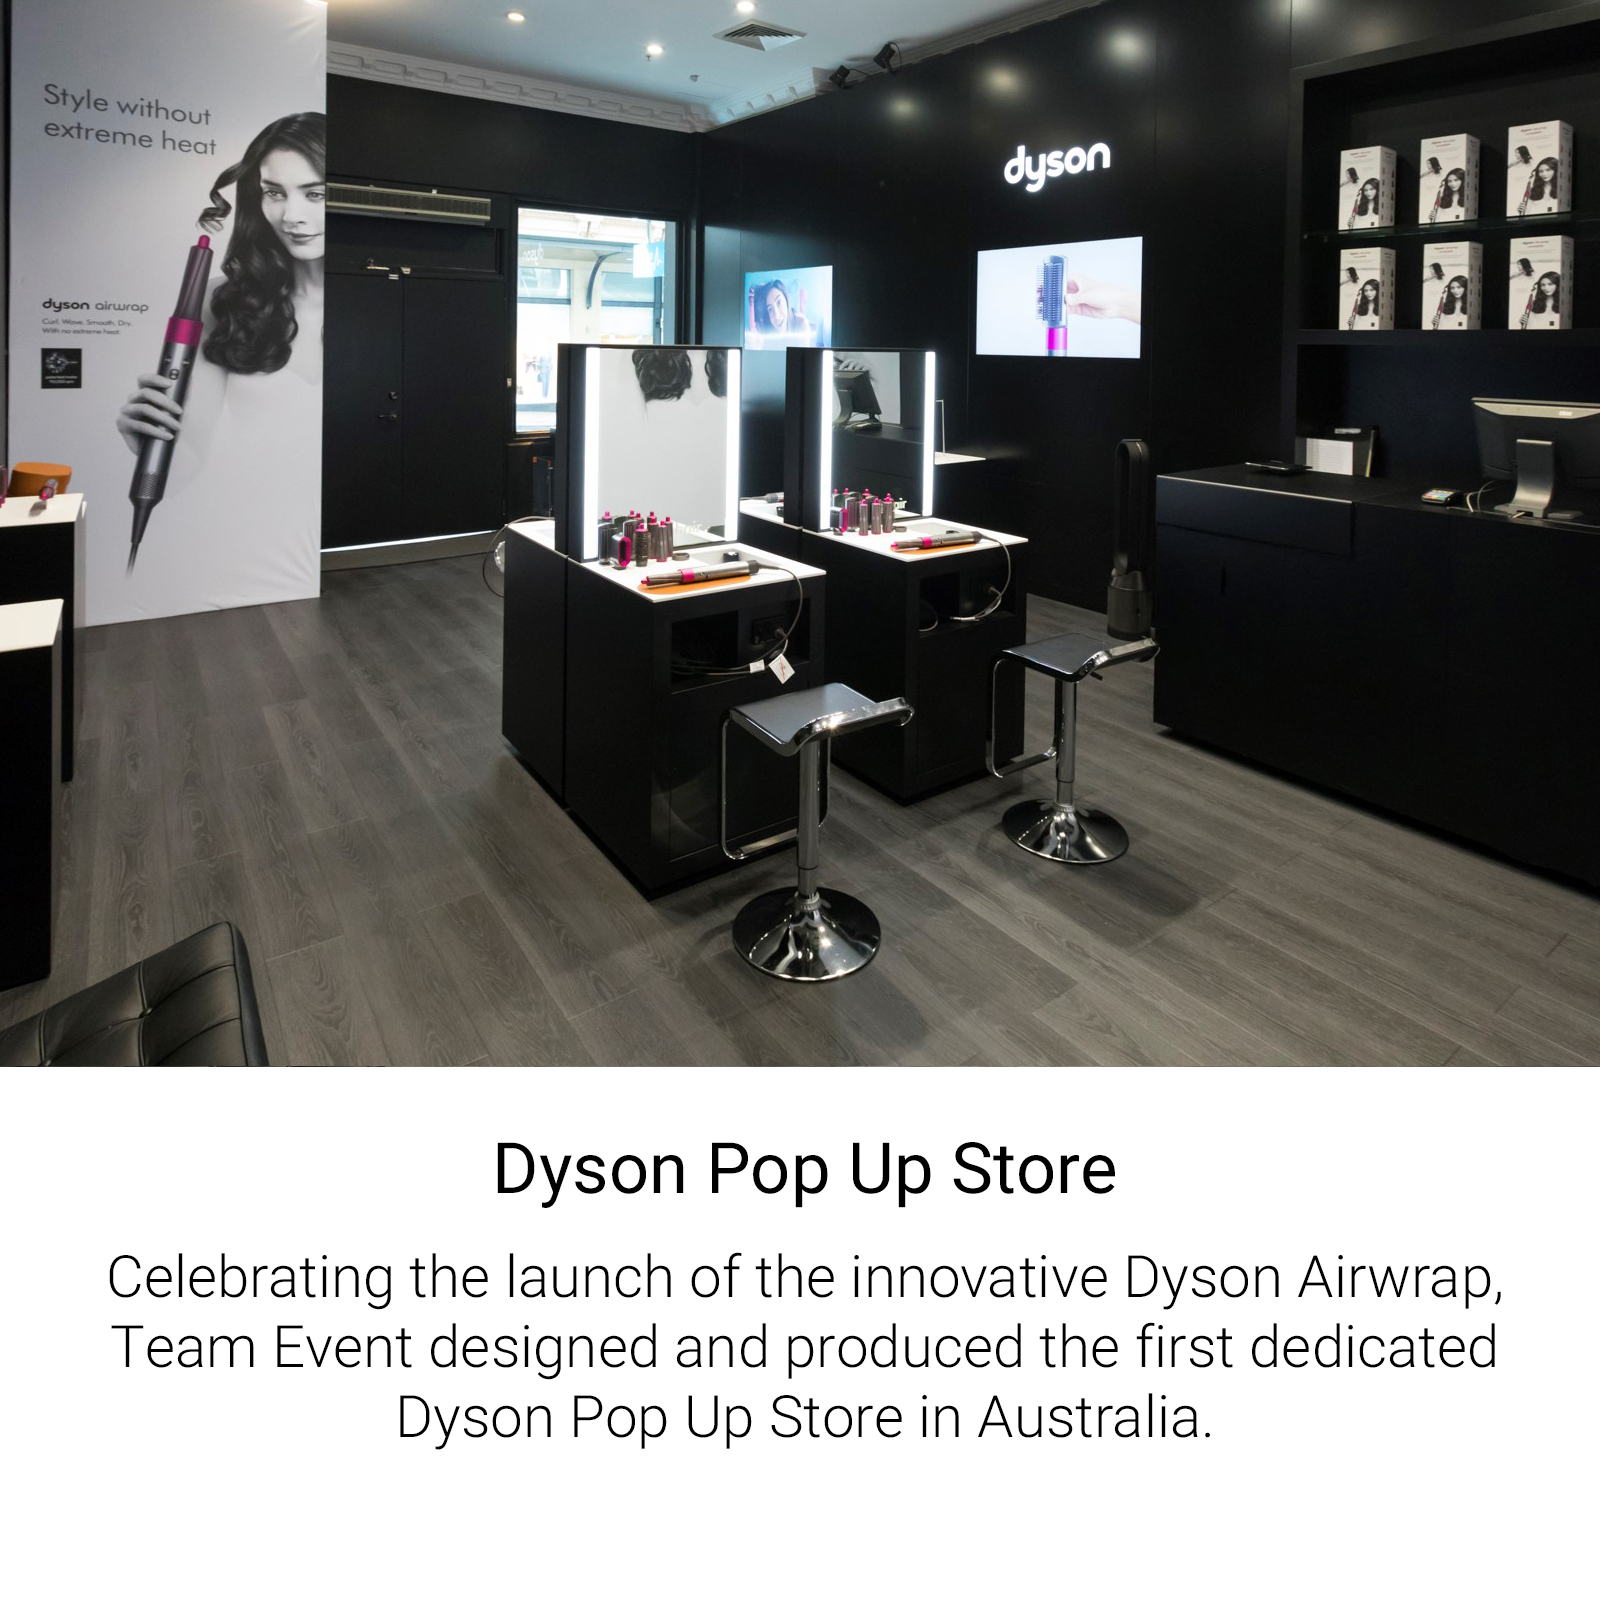 Dyson Pop Up Store